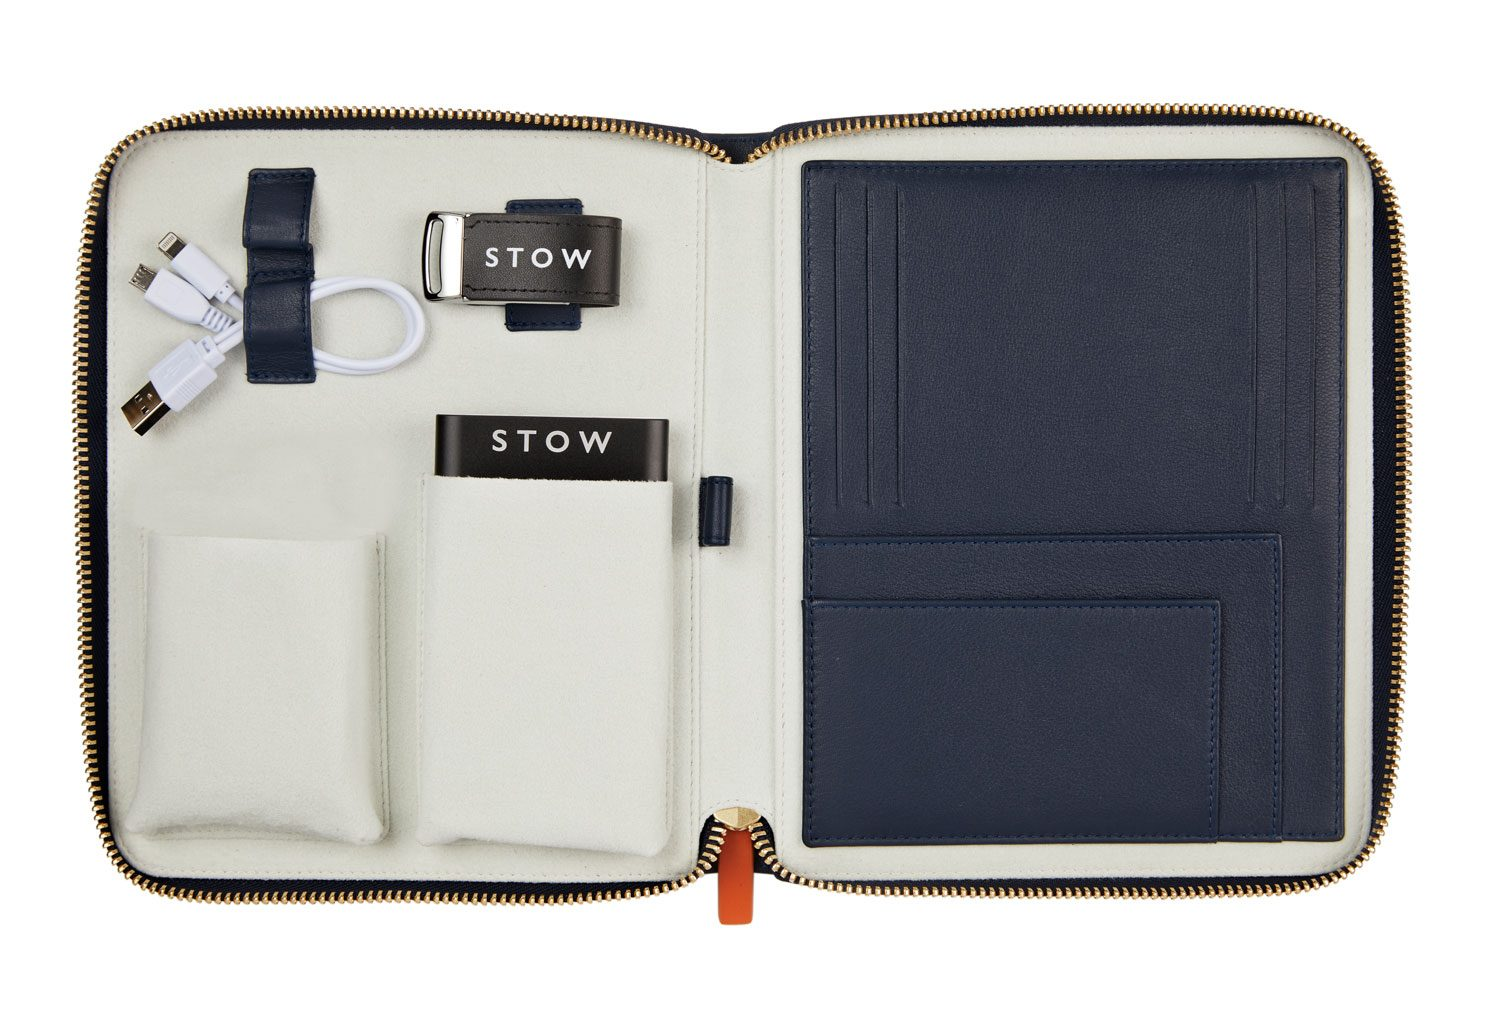 The First Class Leather Tech Case